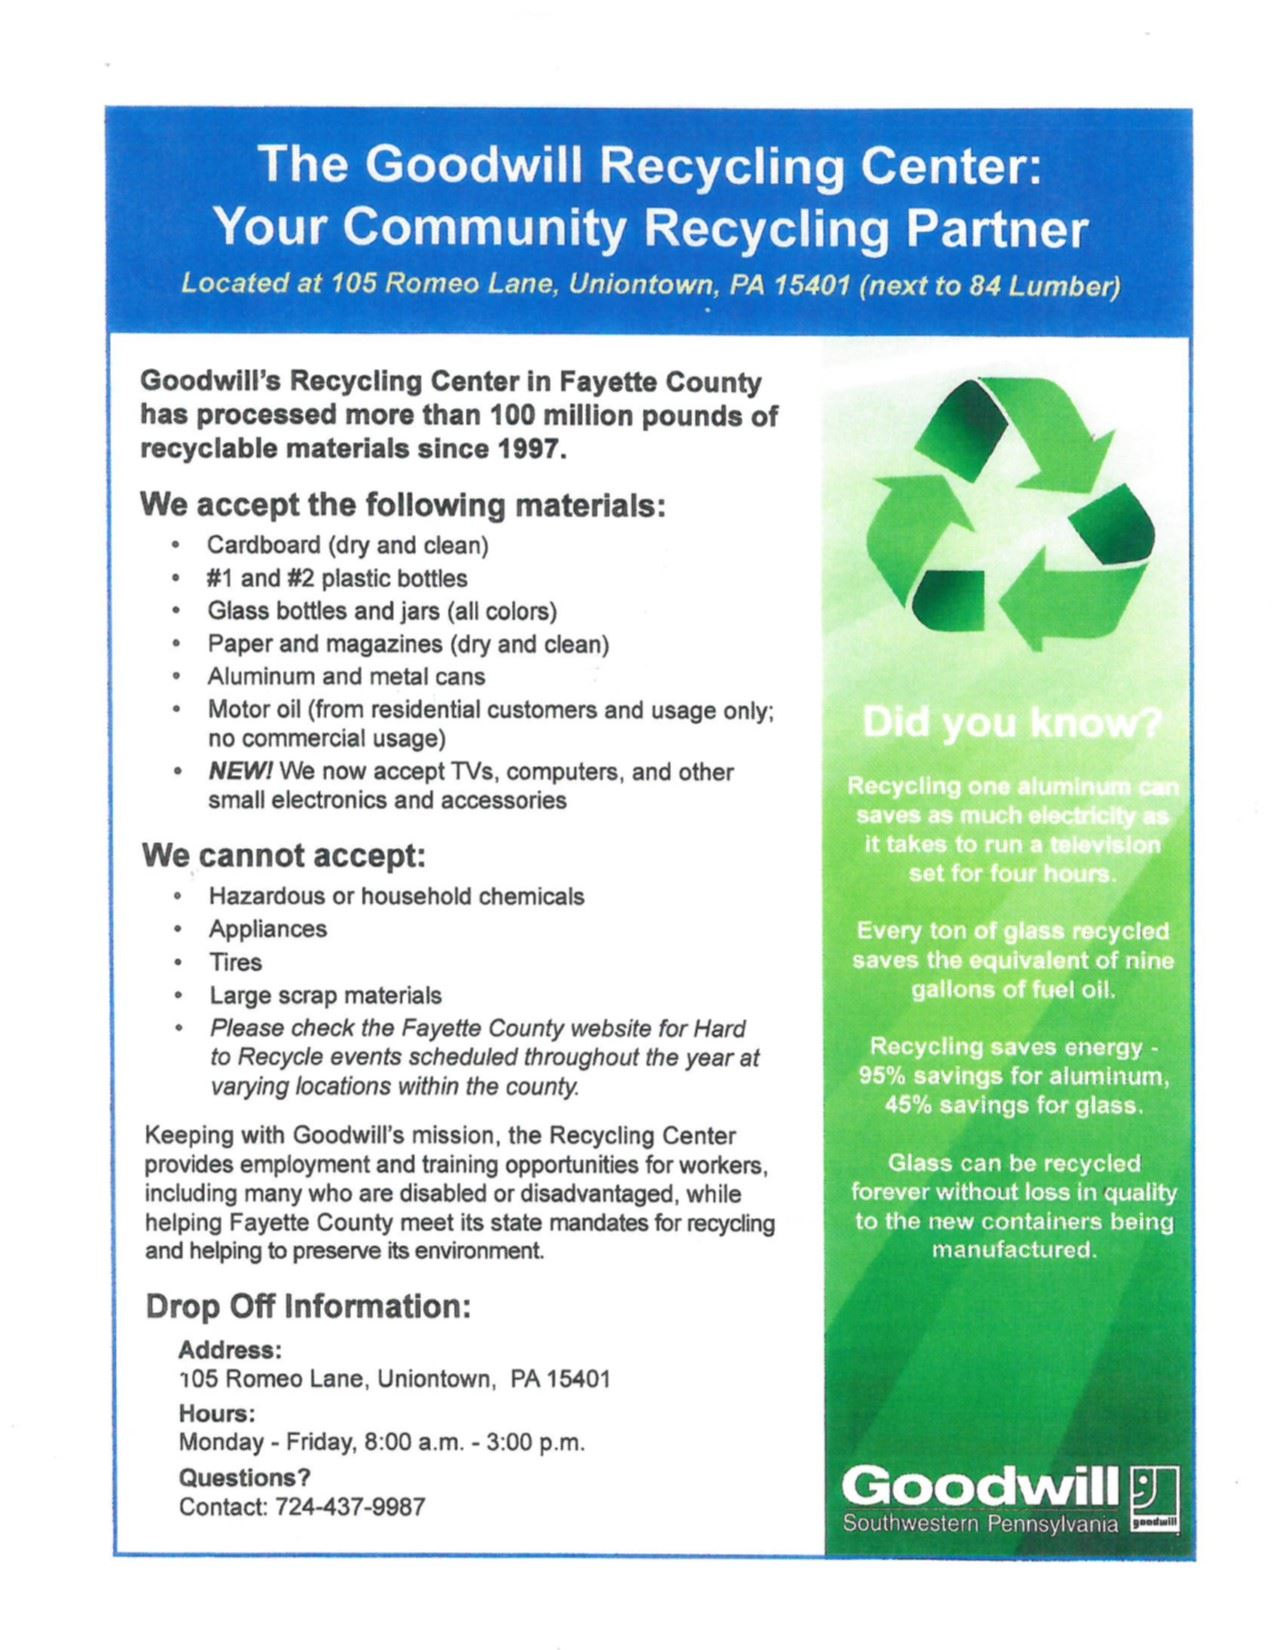 Flyer from Goodwill detailing what they will accept for recycling